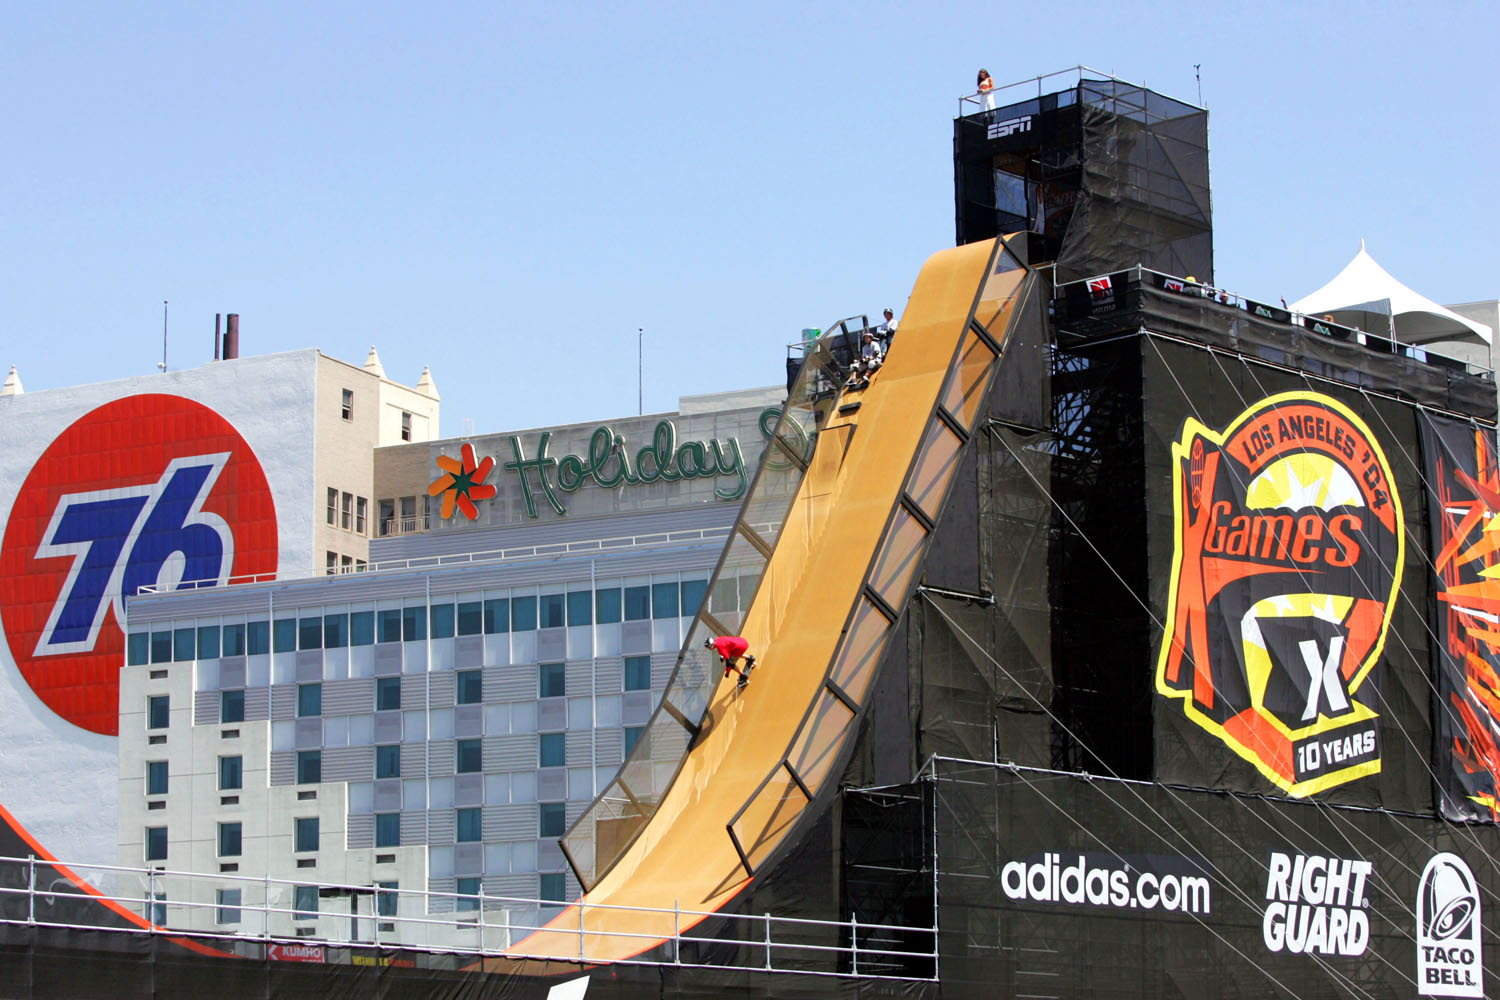 Danny Way drops into the ramp during the Skateboard Big Air competition during X Games 11 on August 6, 2004 at the Staples Center in Los Angeles, California.